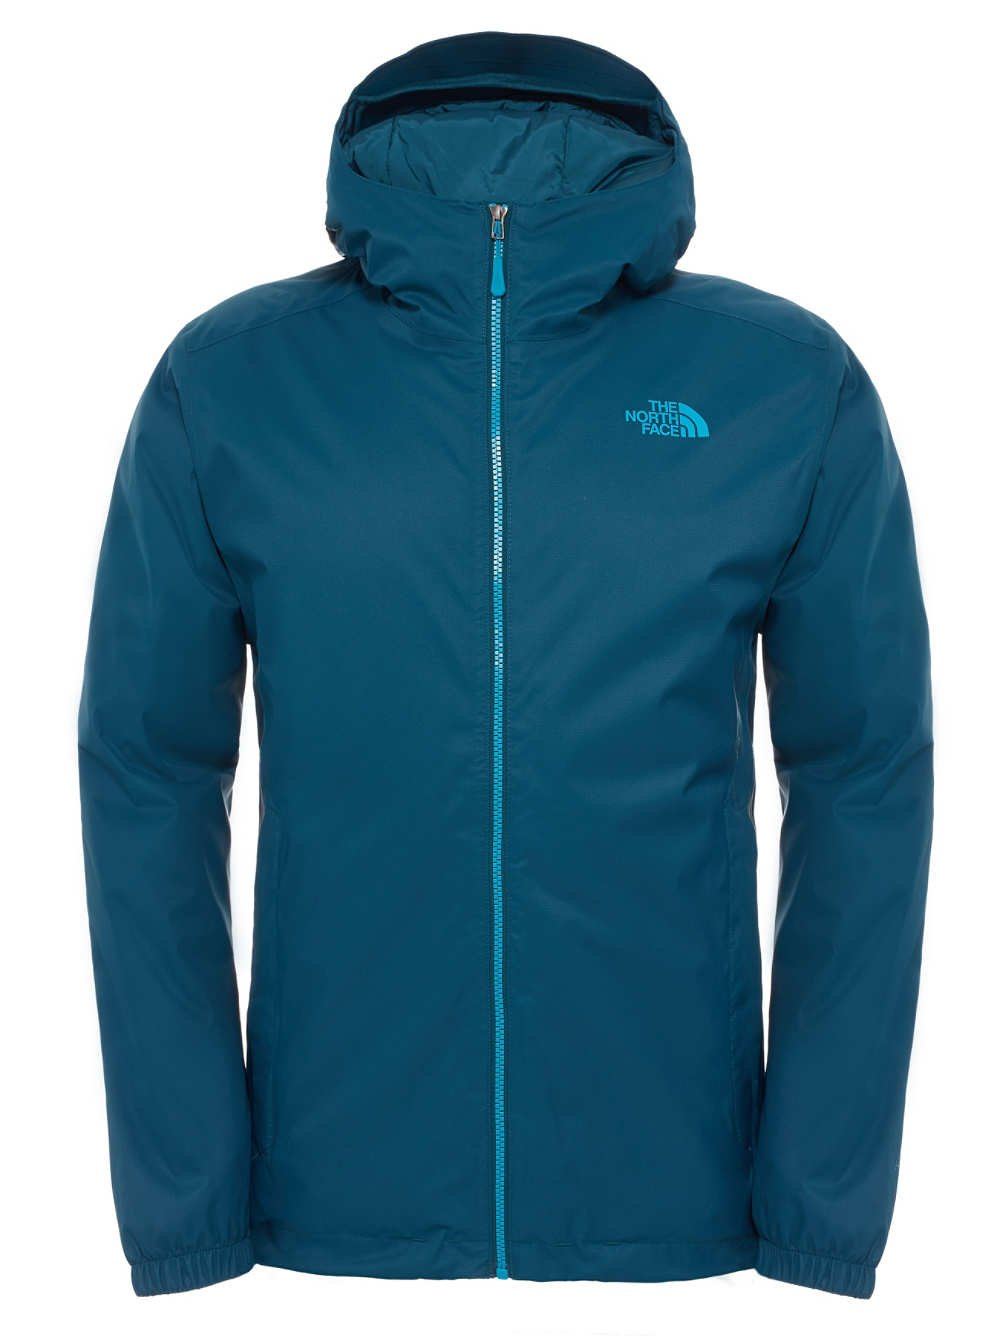 THE NORTH FACE Herren Hardshelljacke Quest Insulated jetzt kaufen